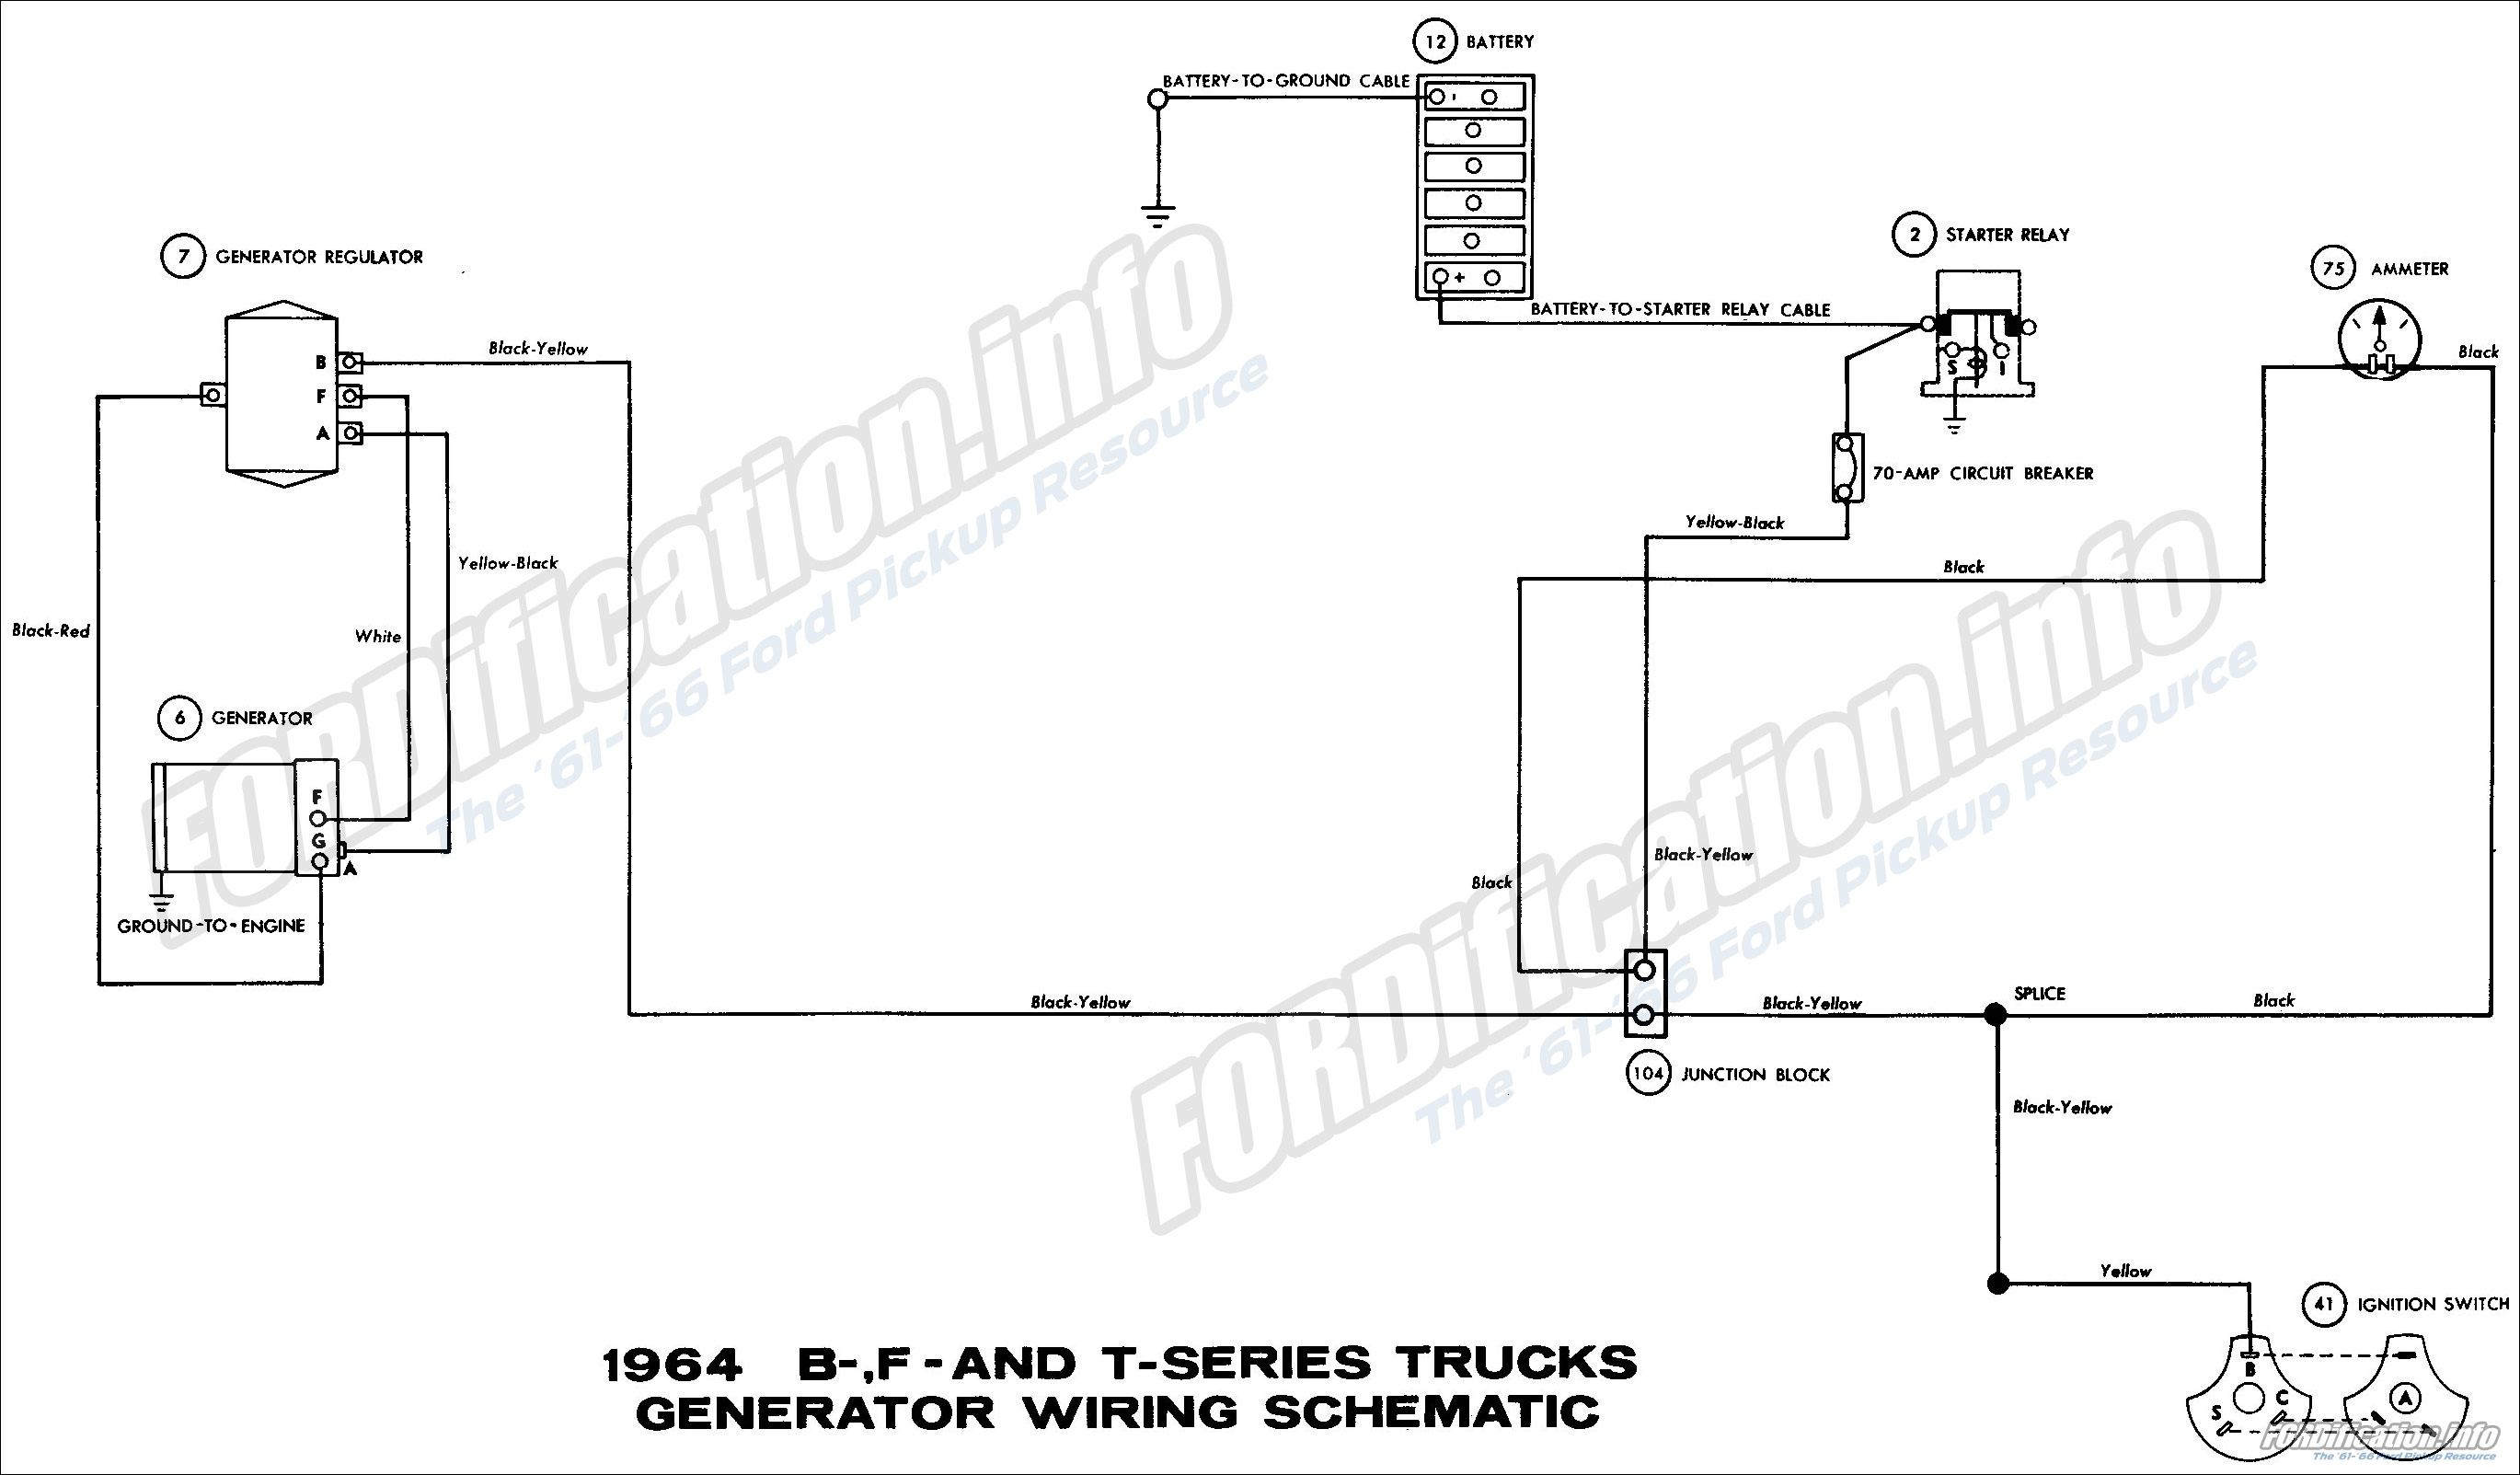 1992 toyota truck wiring diagram dimmer switch extension cord cadillac sts fuse box land